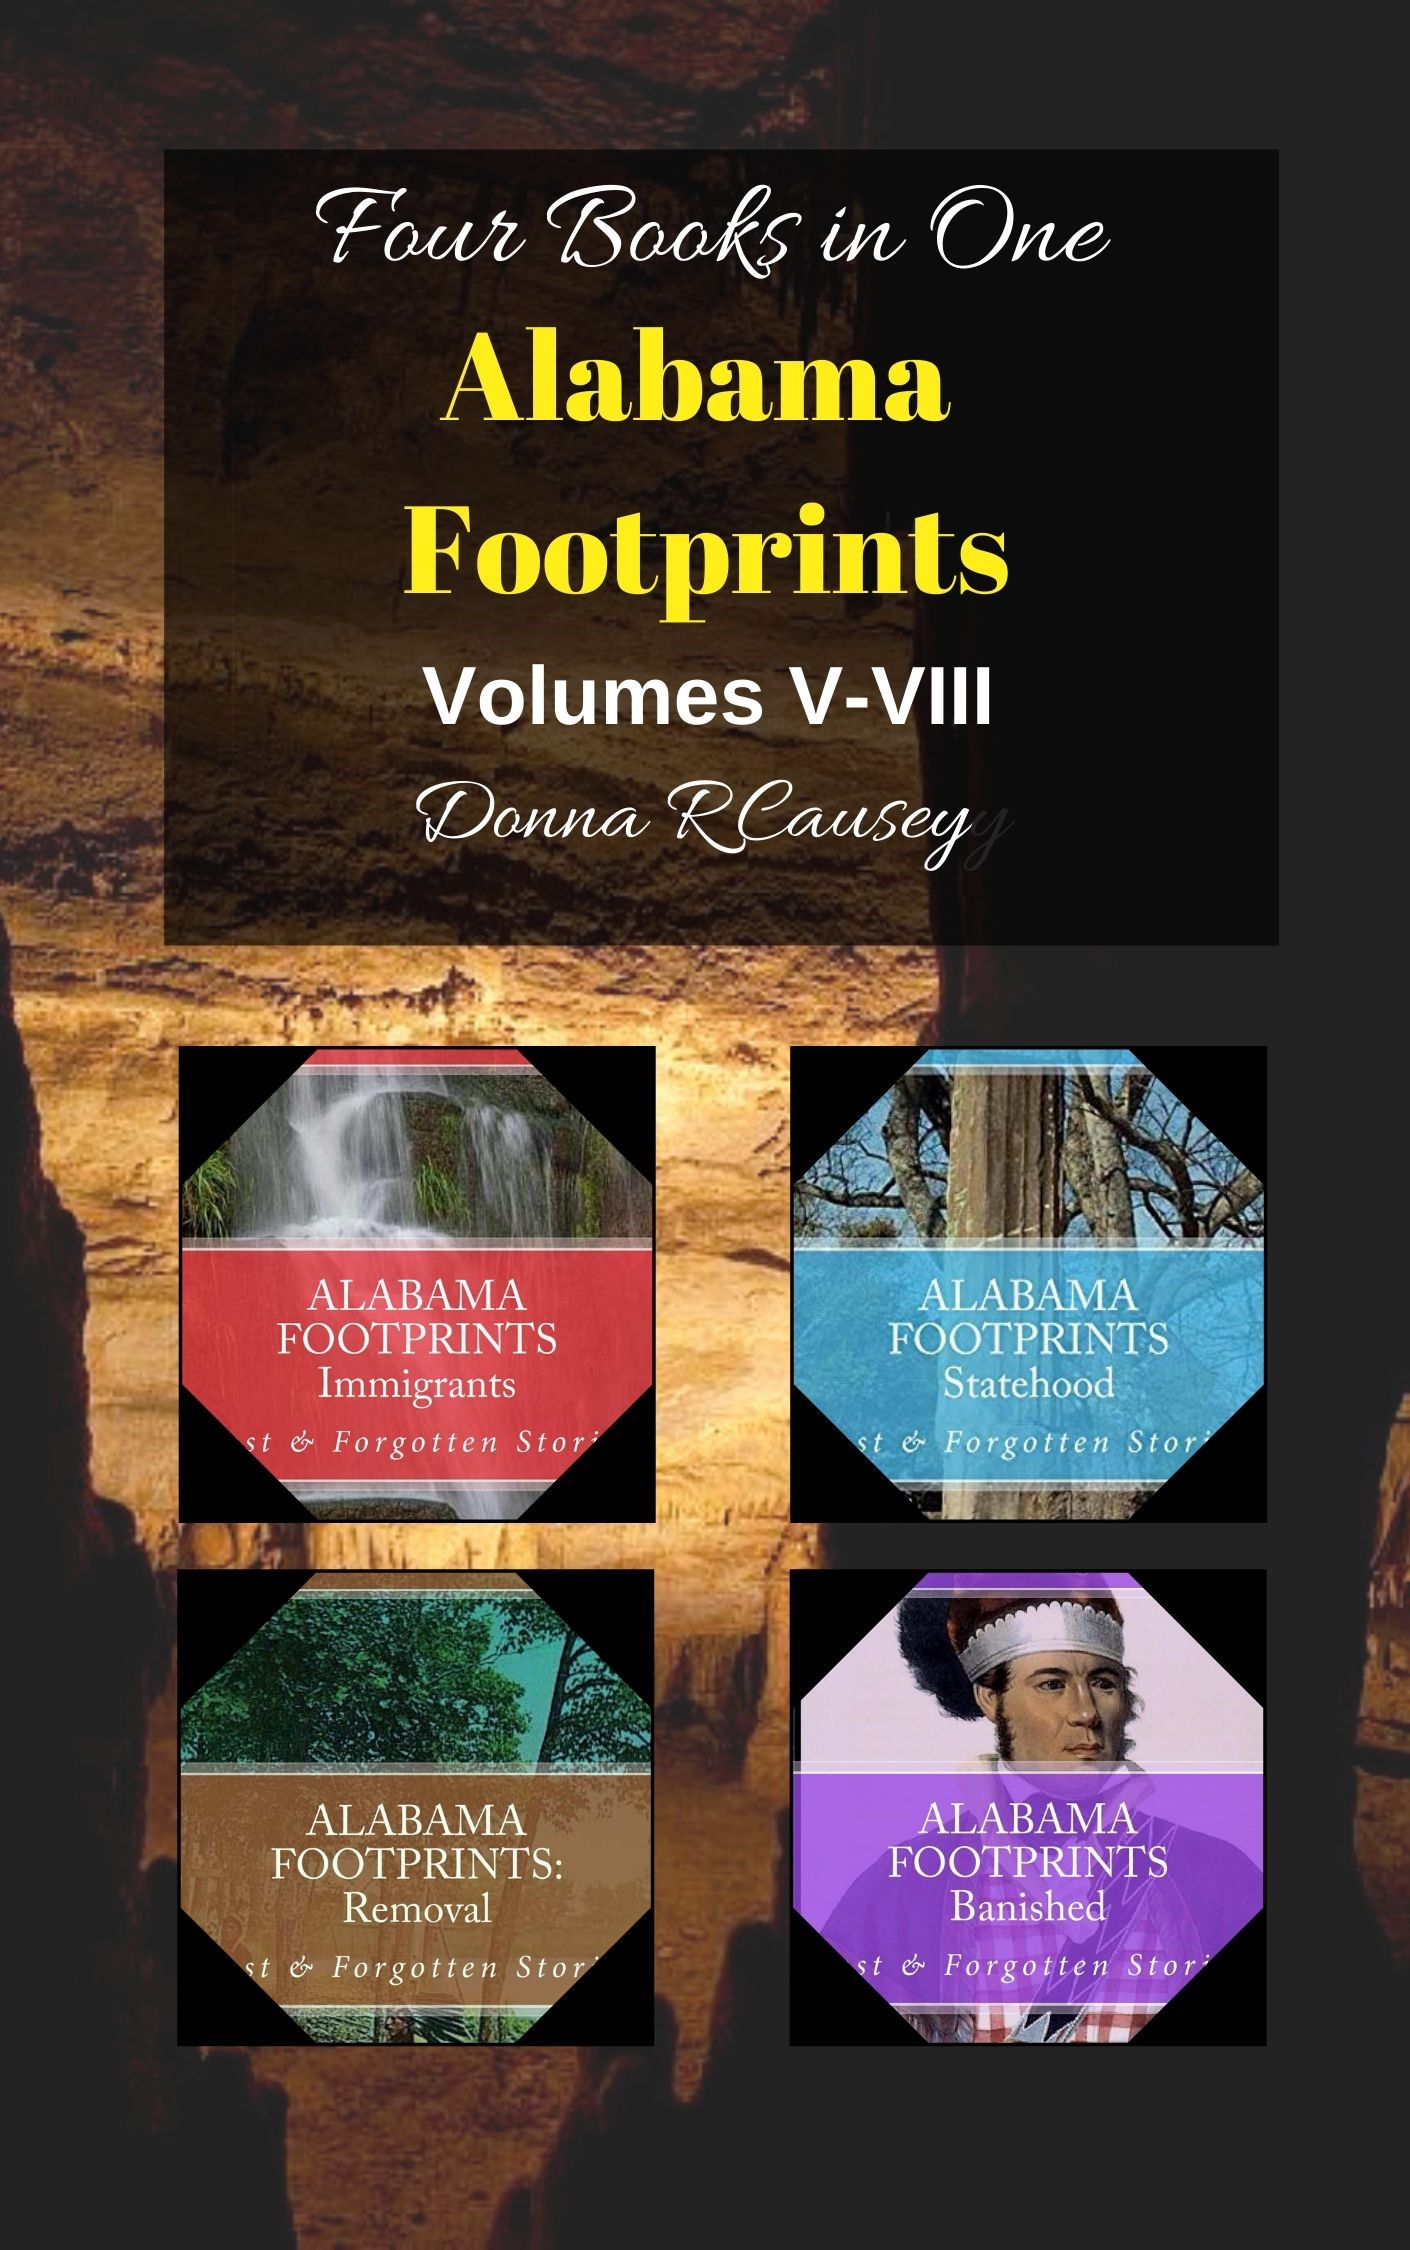 UPDATE: Alabama Footprints Series Volumes 1-VIII - now combined in two books!